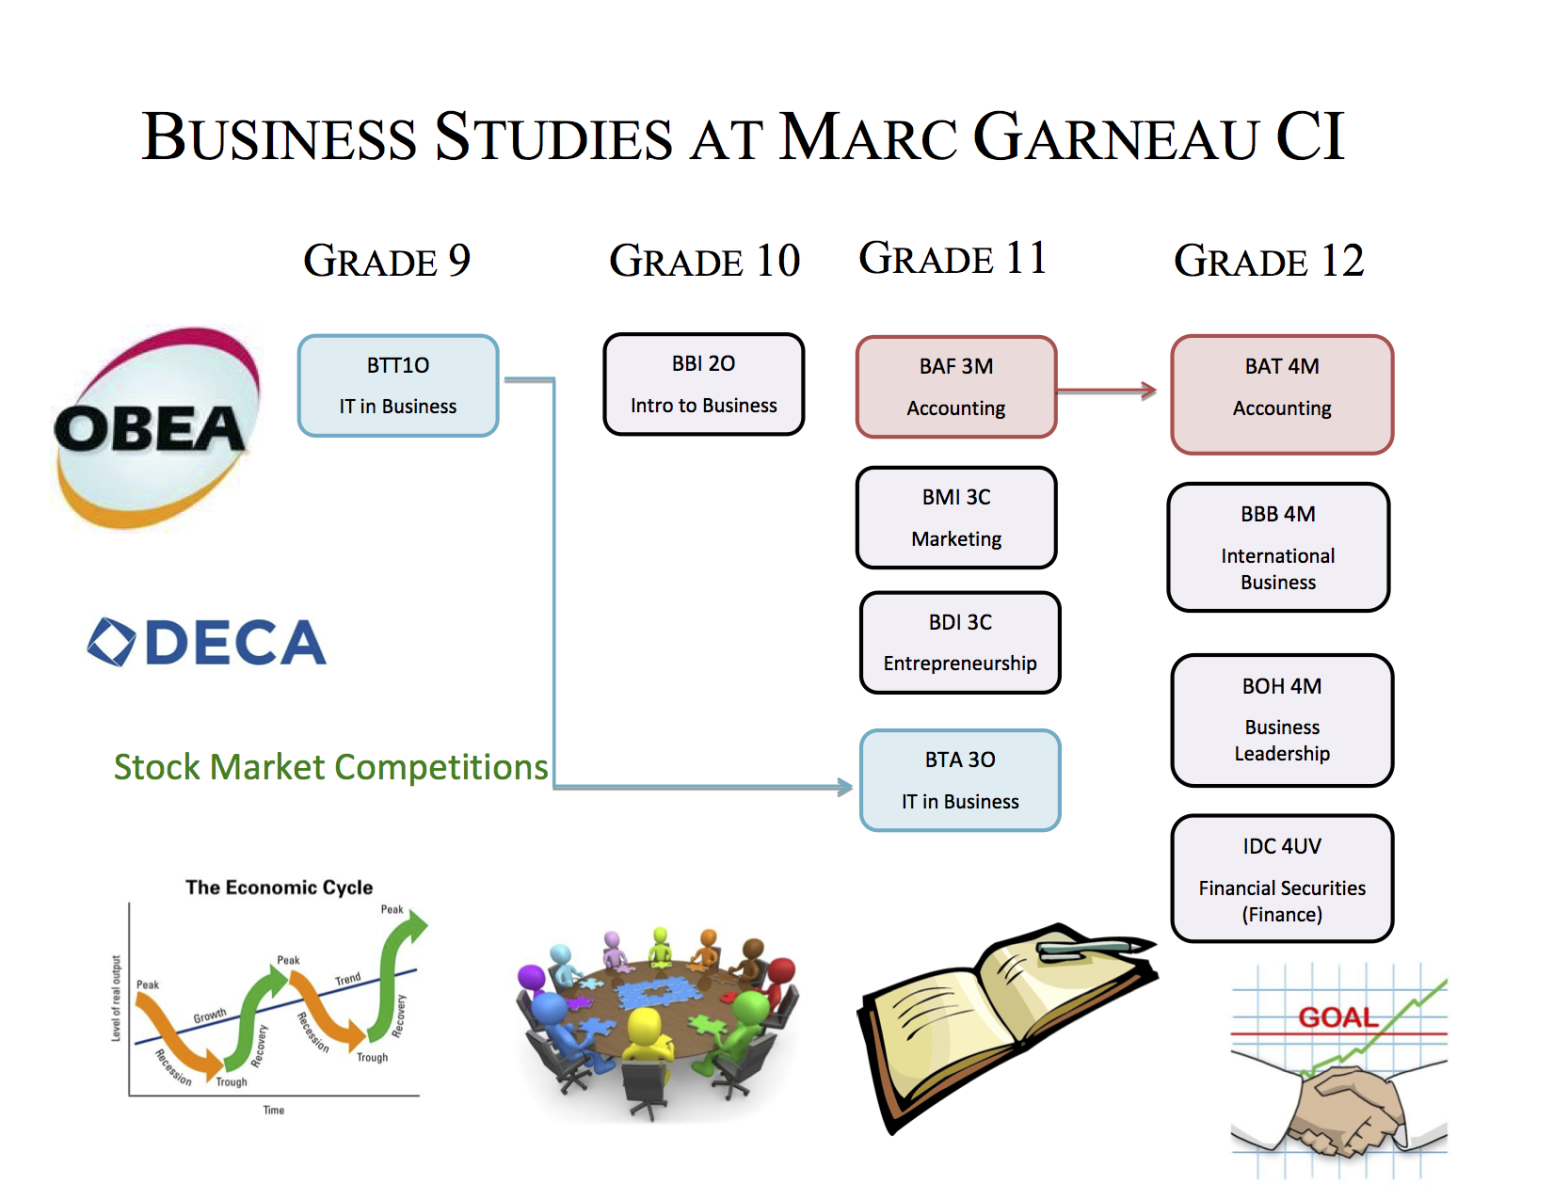 Image of Business Course Selection Flowchart provided at Marc Garneau